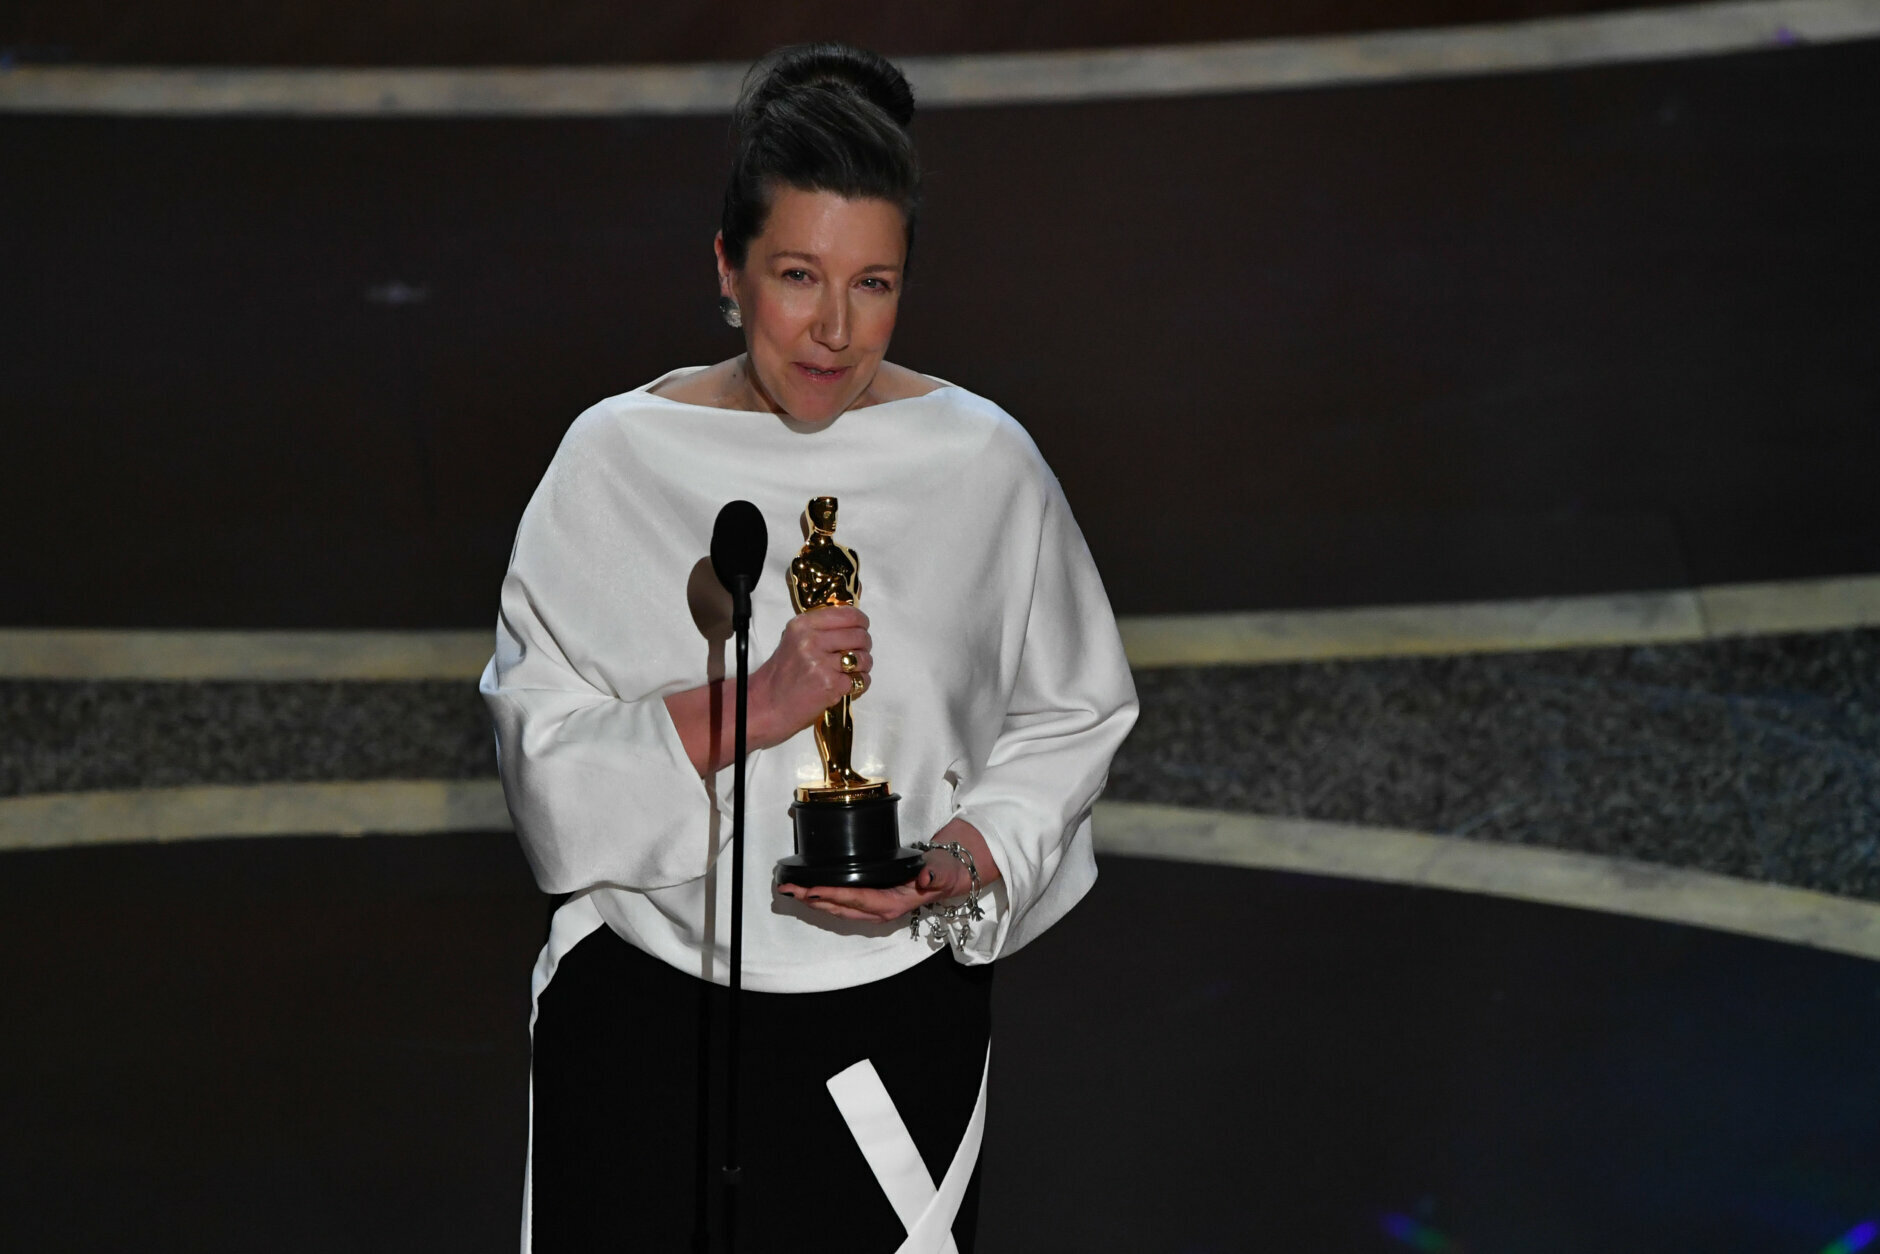 """British costume designer Jacqueline Durran accepts the award for Best Costume Design for """"Little Women"""" during the 92nd Oscars at the Dolby Theatre in Hollywood, California on February 9, 2020. (Photo by Mark RALSTON / AFP) (Photo by MARK RALSTON/AFP via Getty Images)"""